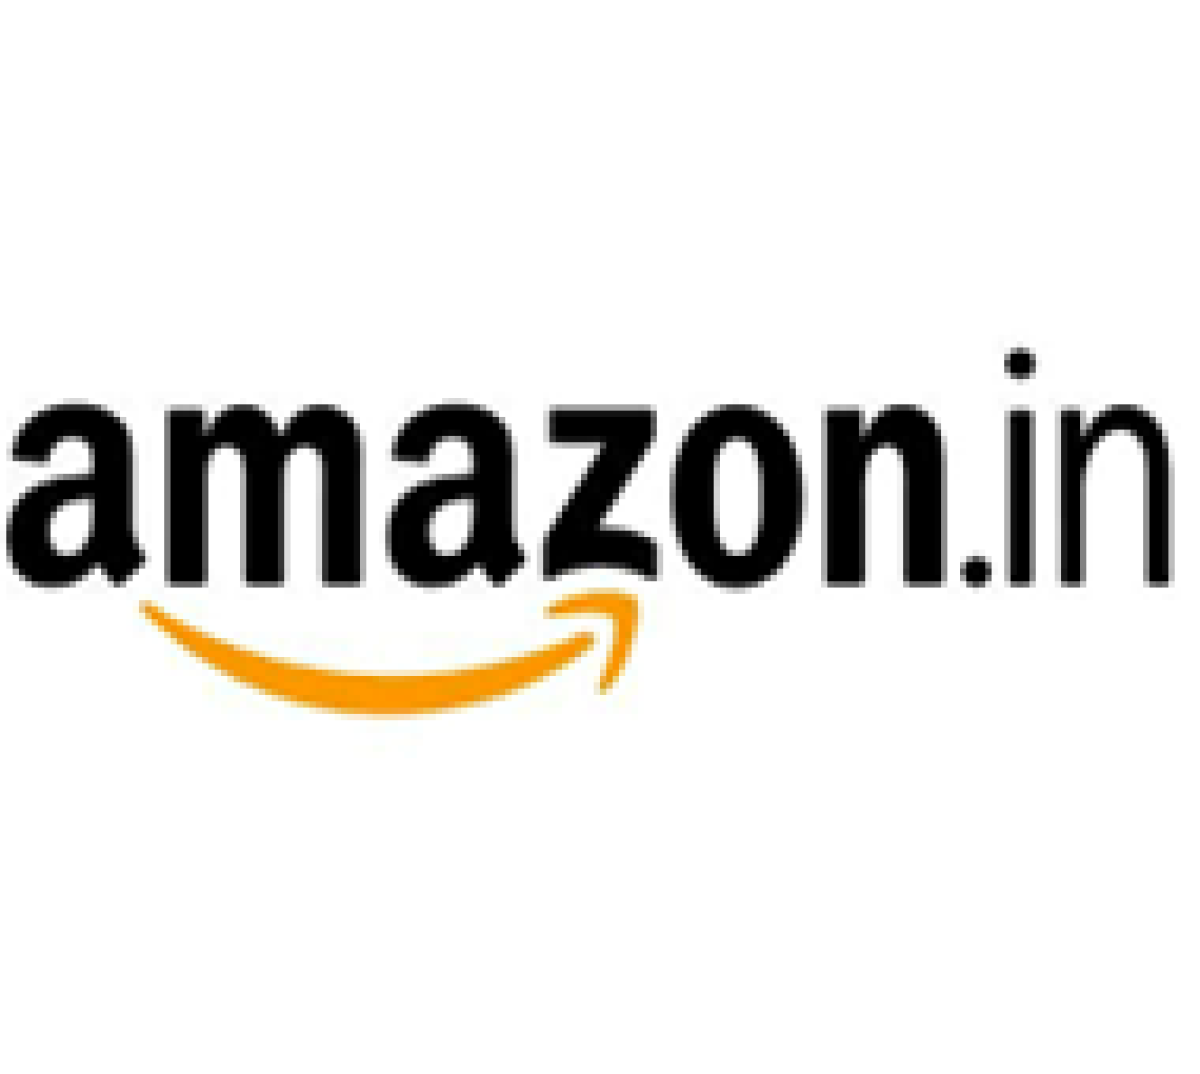 Amazon India teams up with govt to boost handloom sales